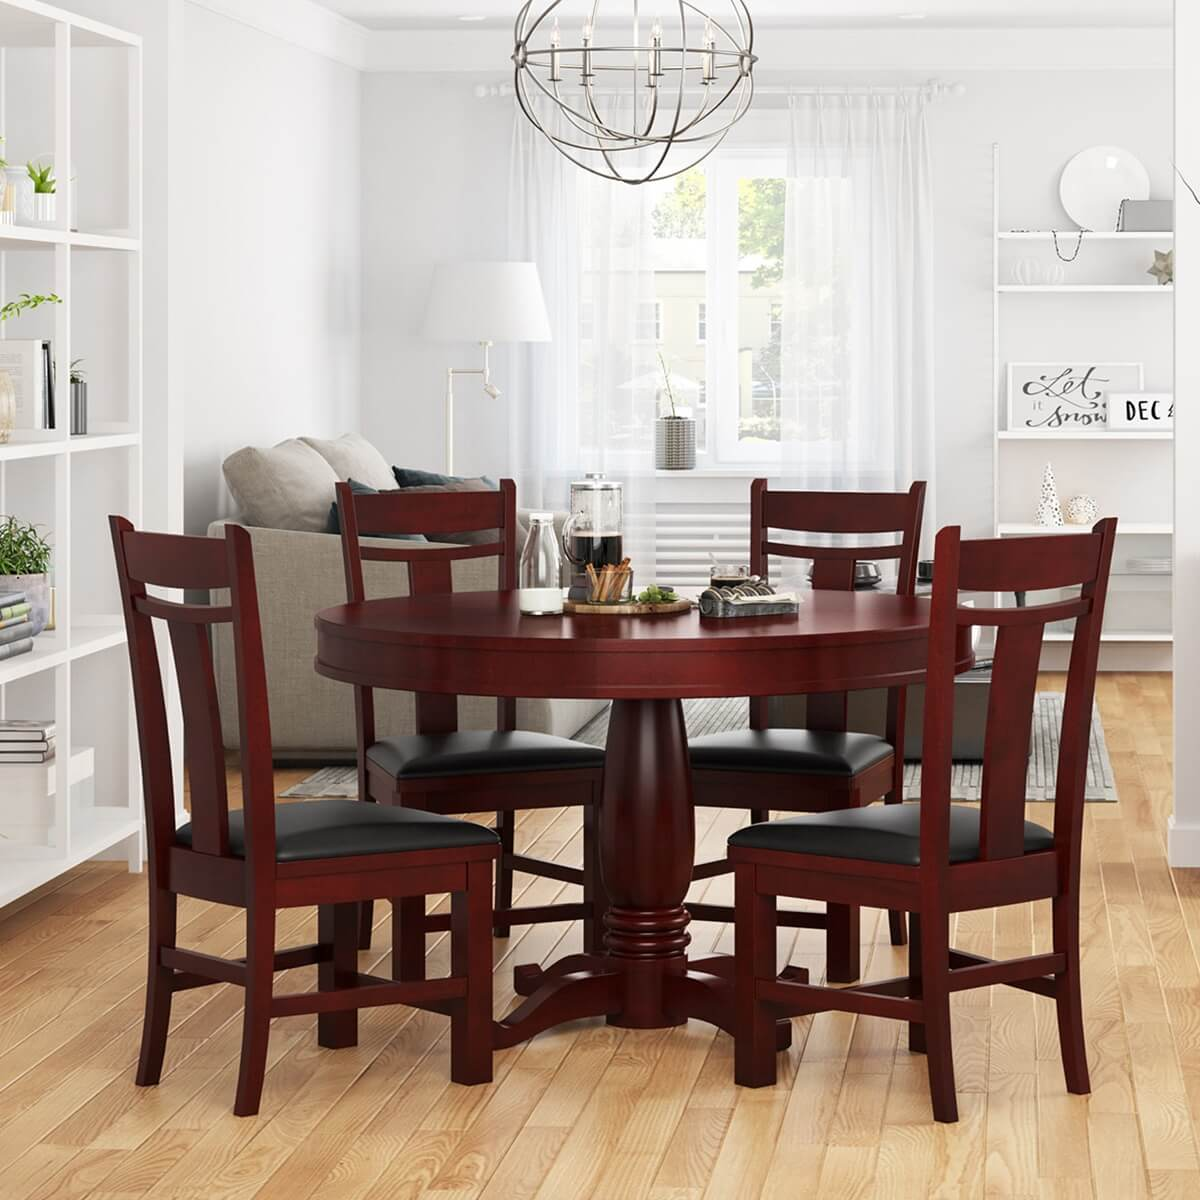 Garcia 5 Piece Dining Table And Chair Set